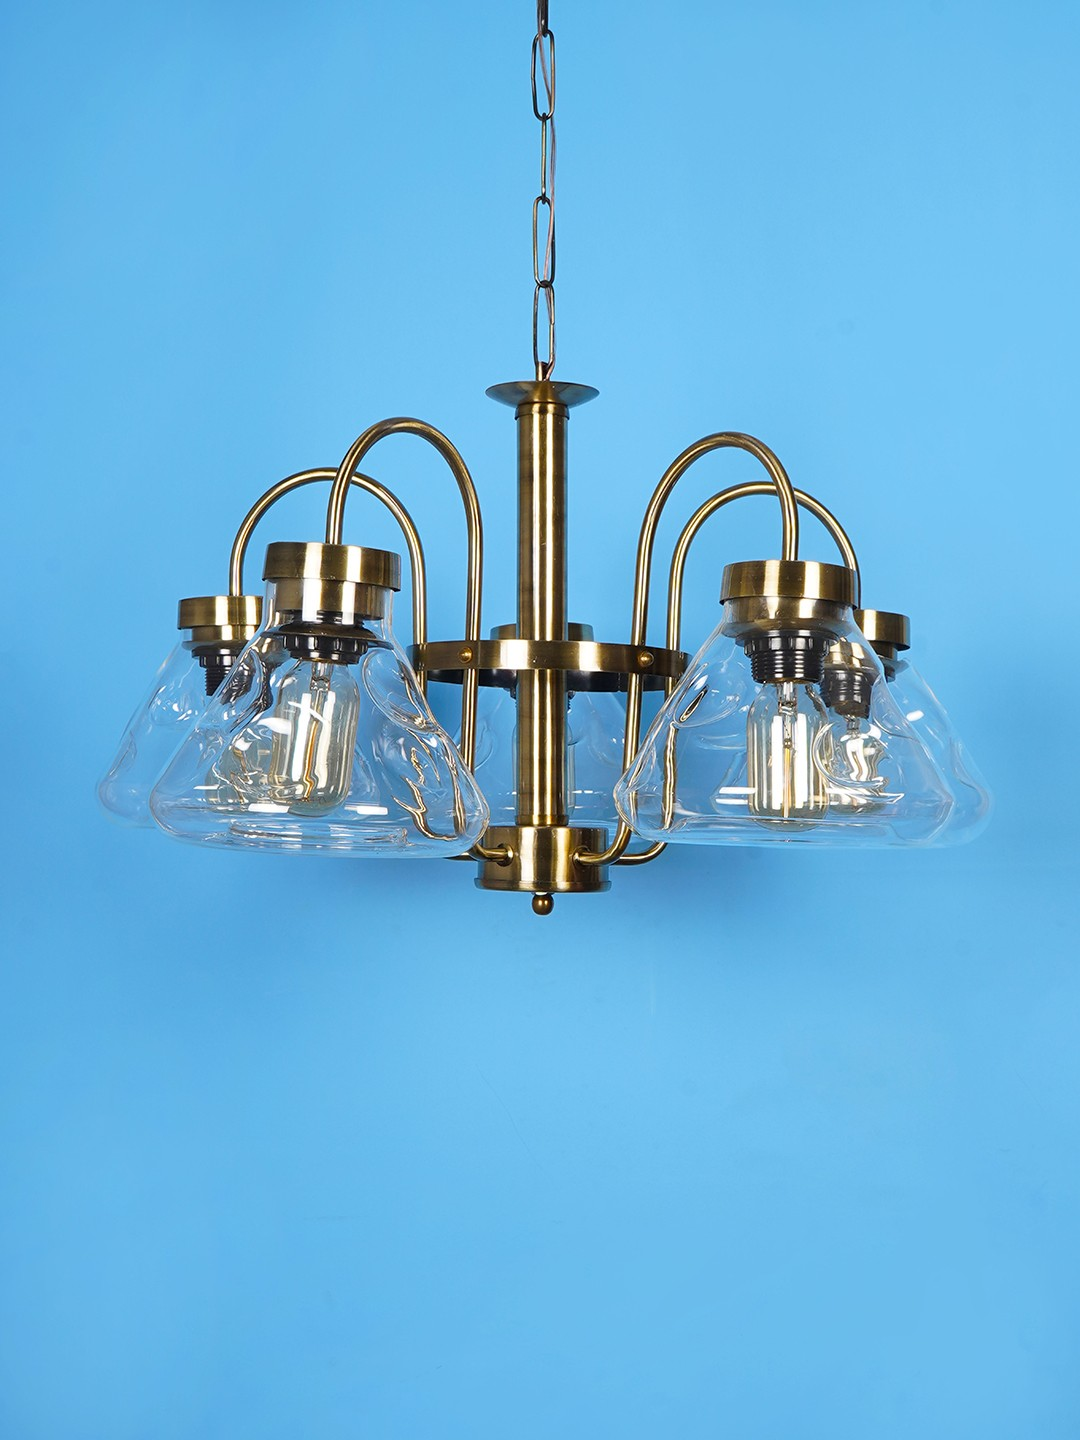 Conical Flask Antique 5 Light Retro Chandelier